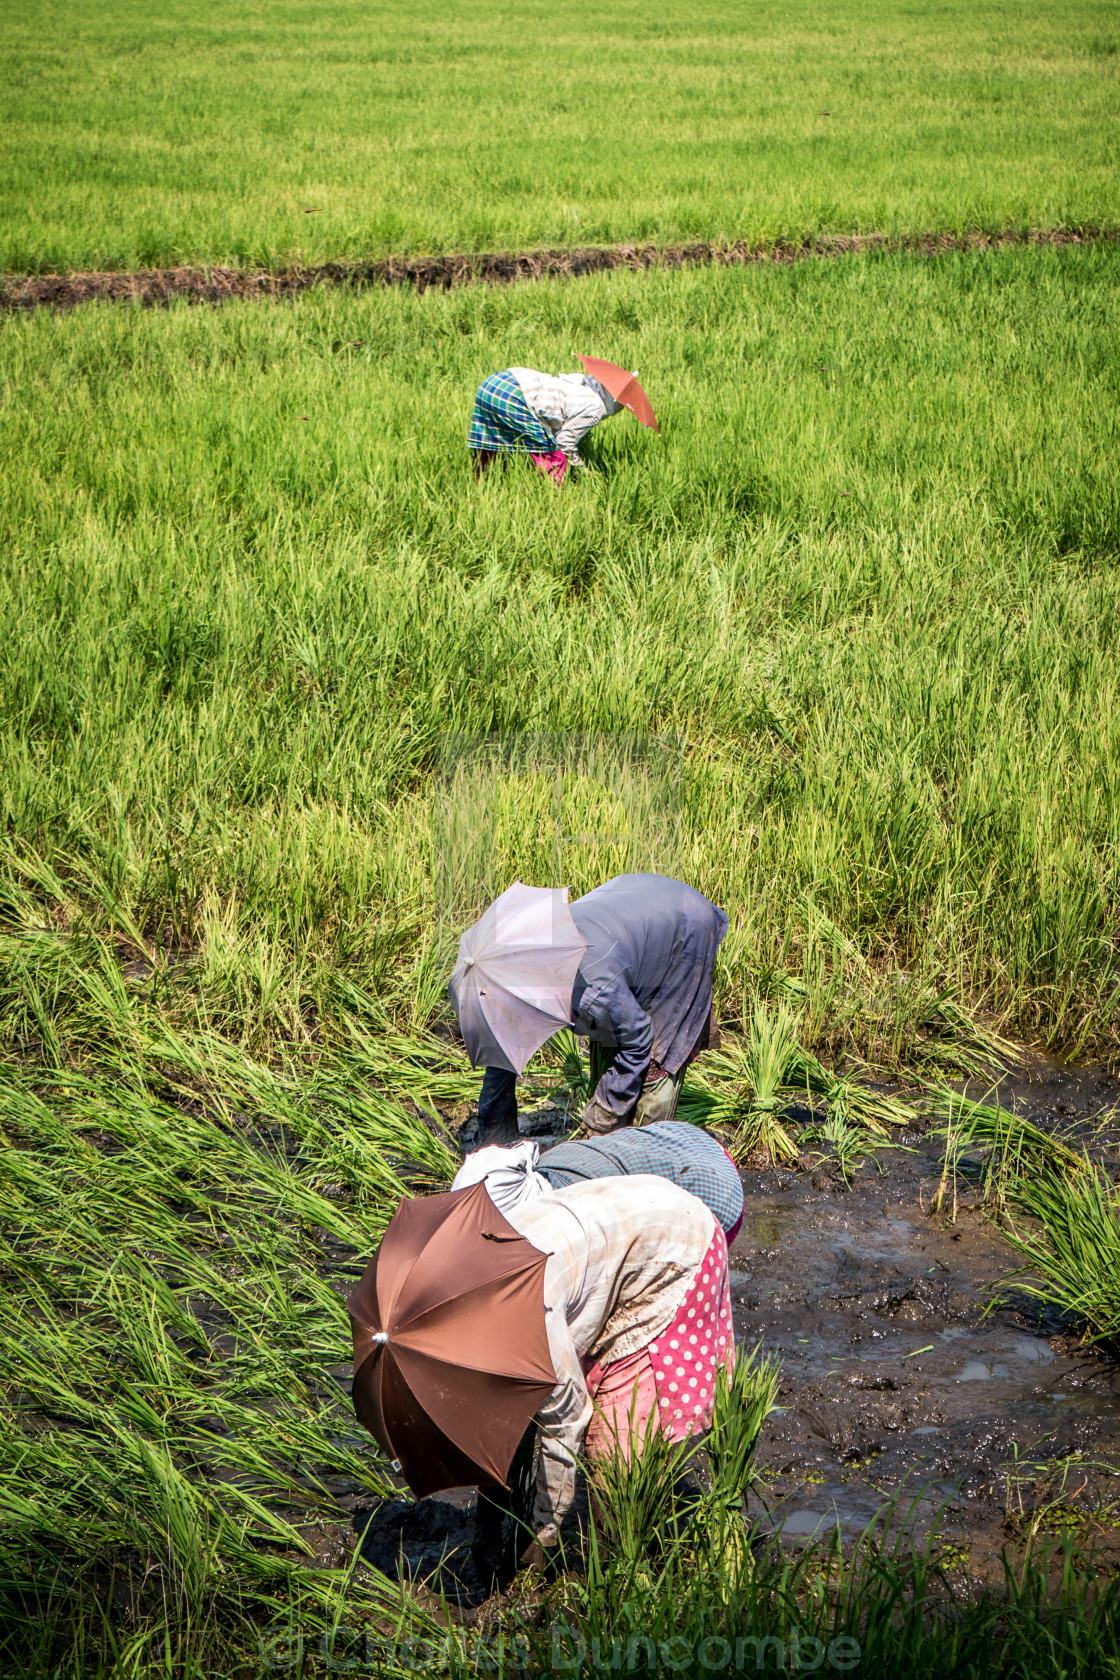 """Asian workers in rice paddy field"" stock image"